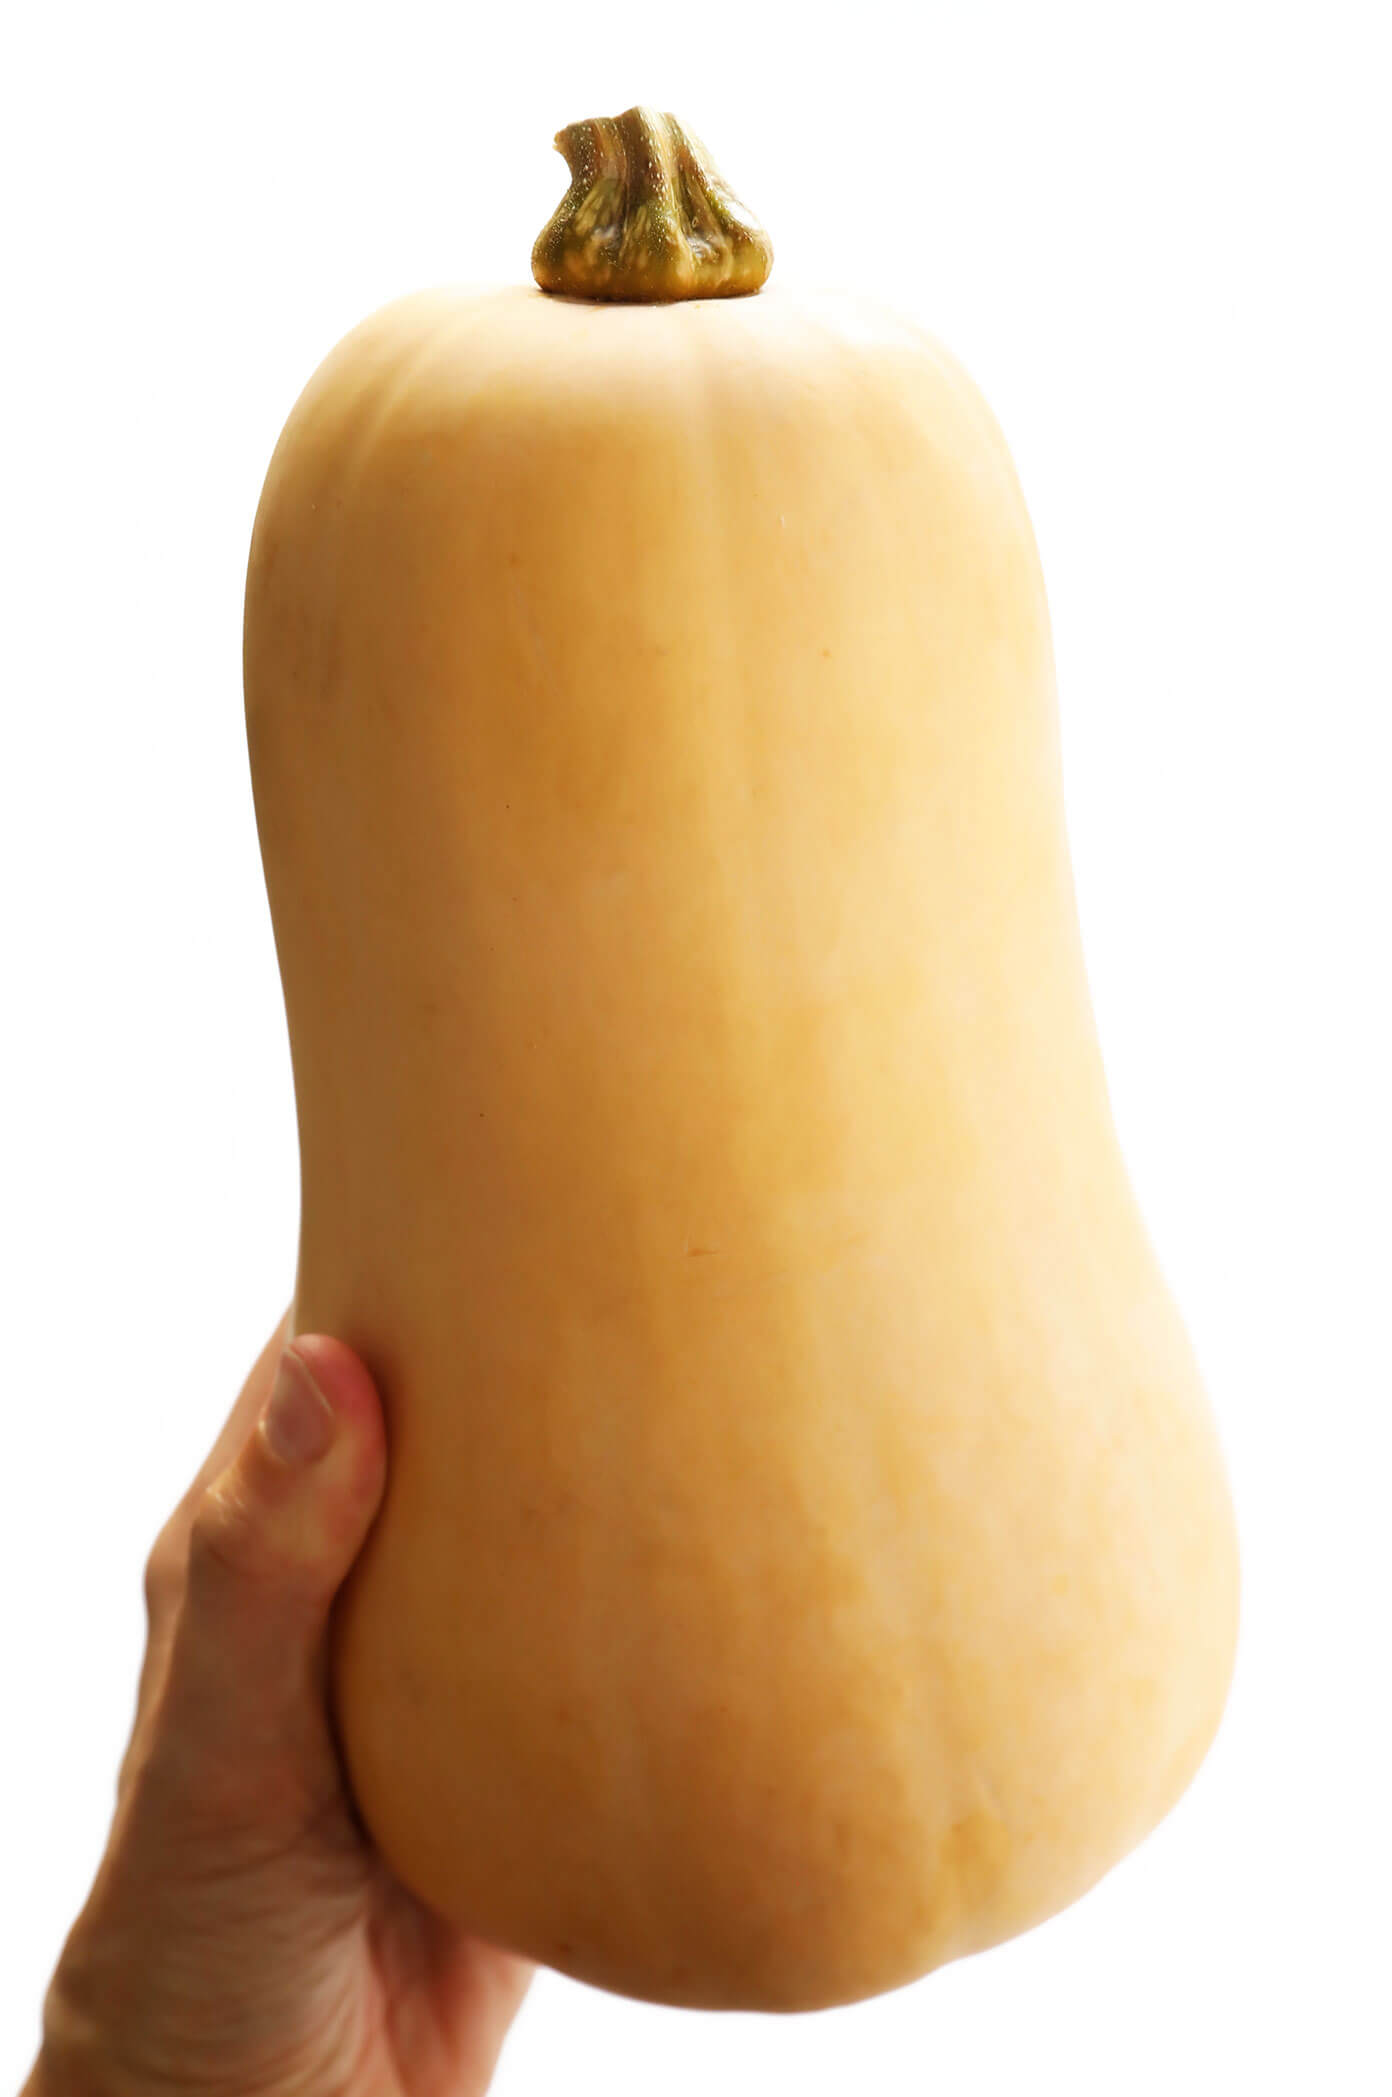 How To Cut Butternut Squash Gimme Some Oven